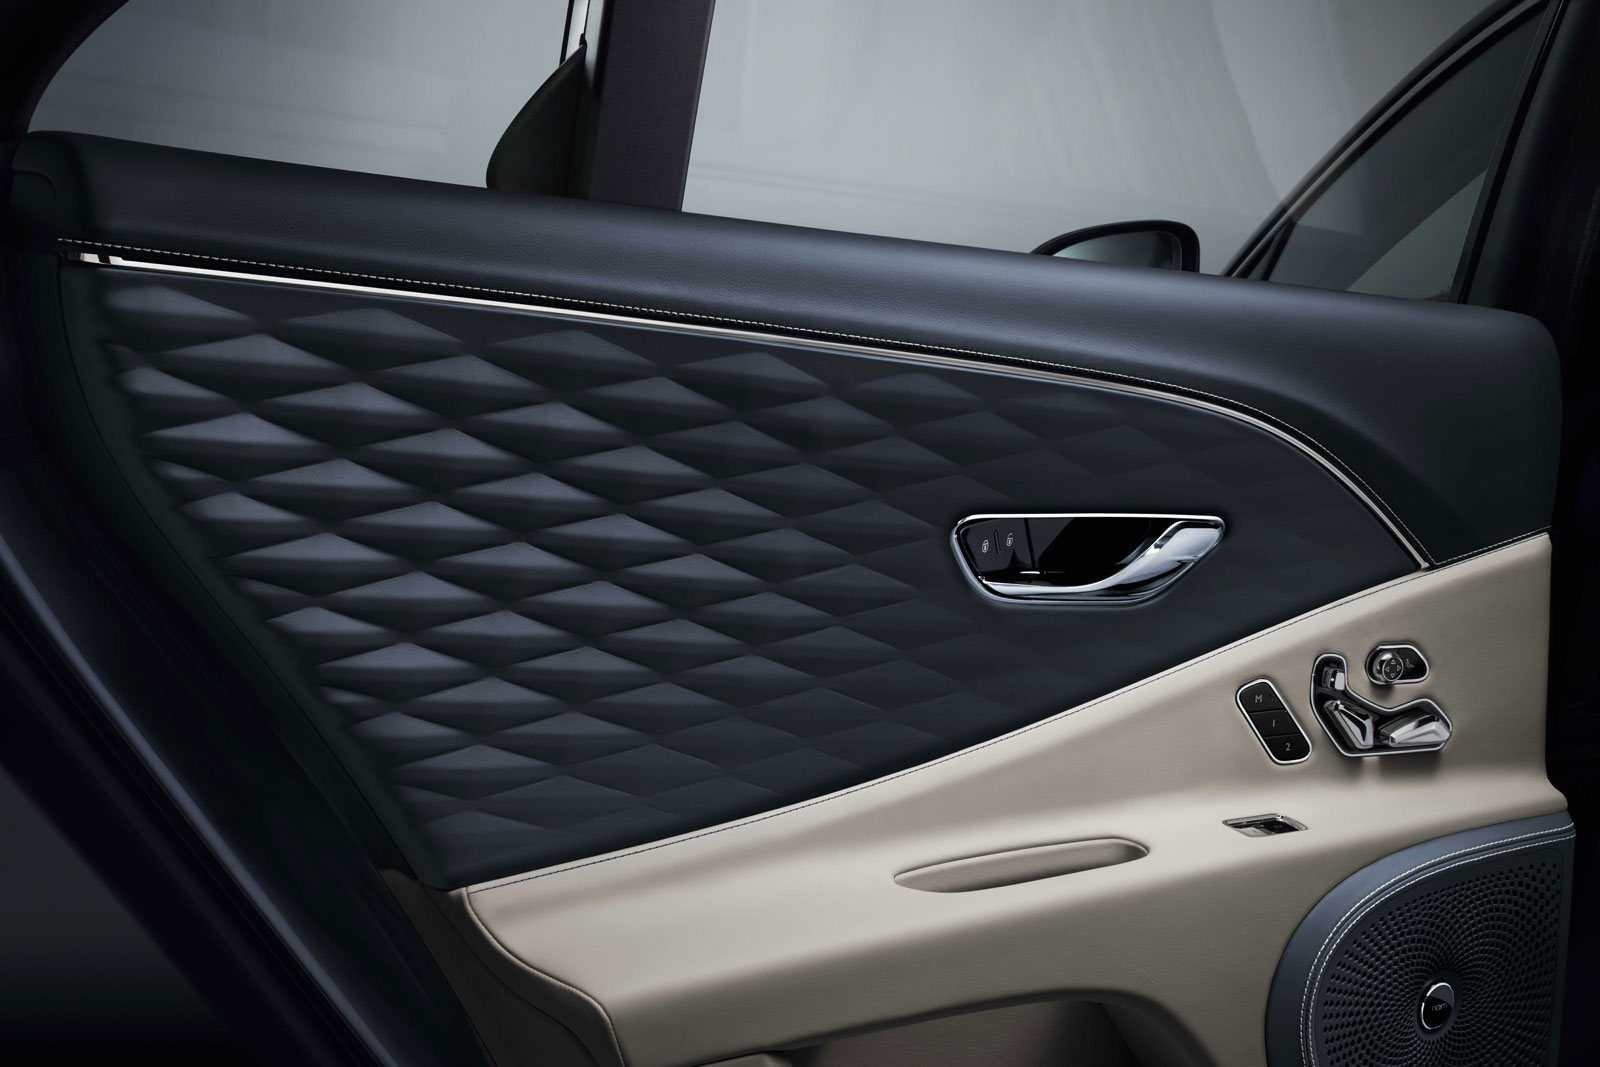 New Bentley Flying Spur Interior 3D Leather door panel ...